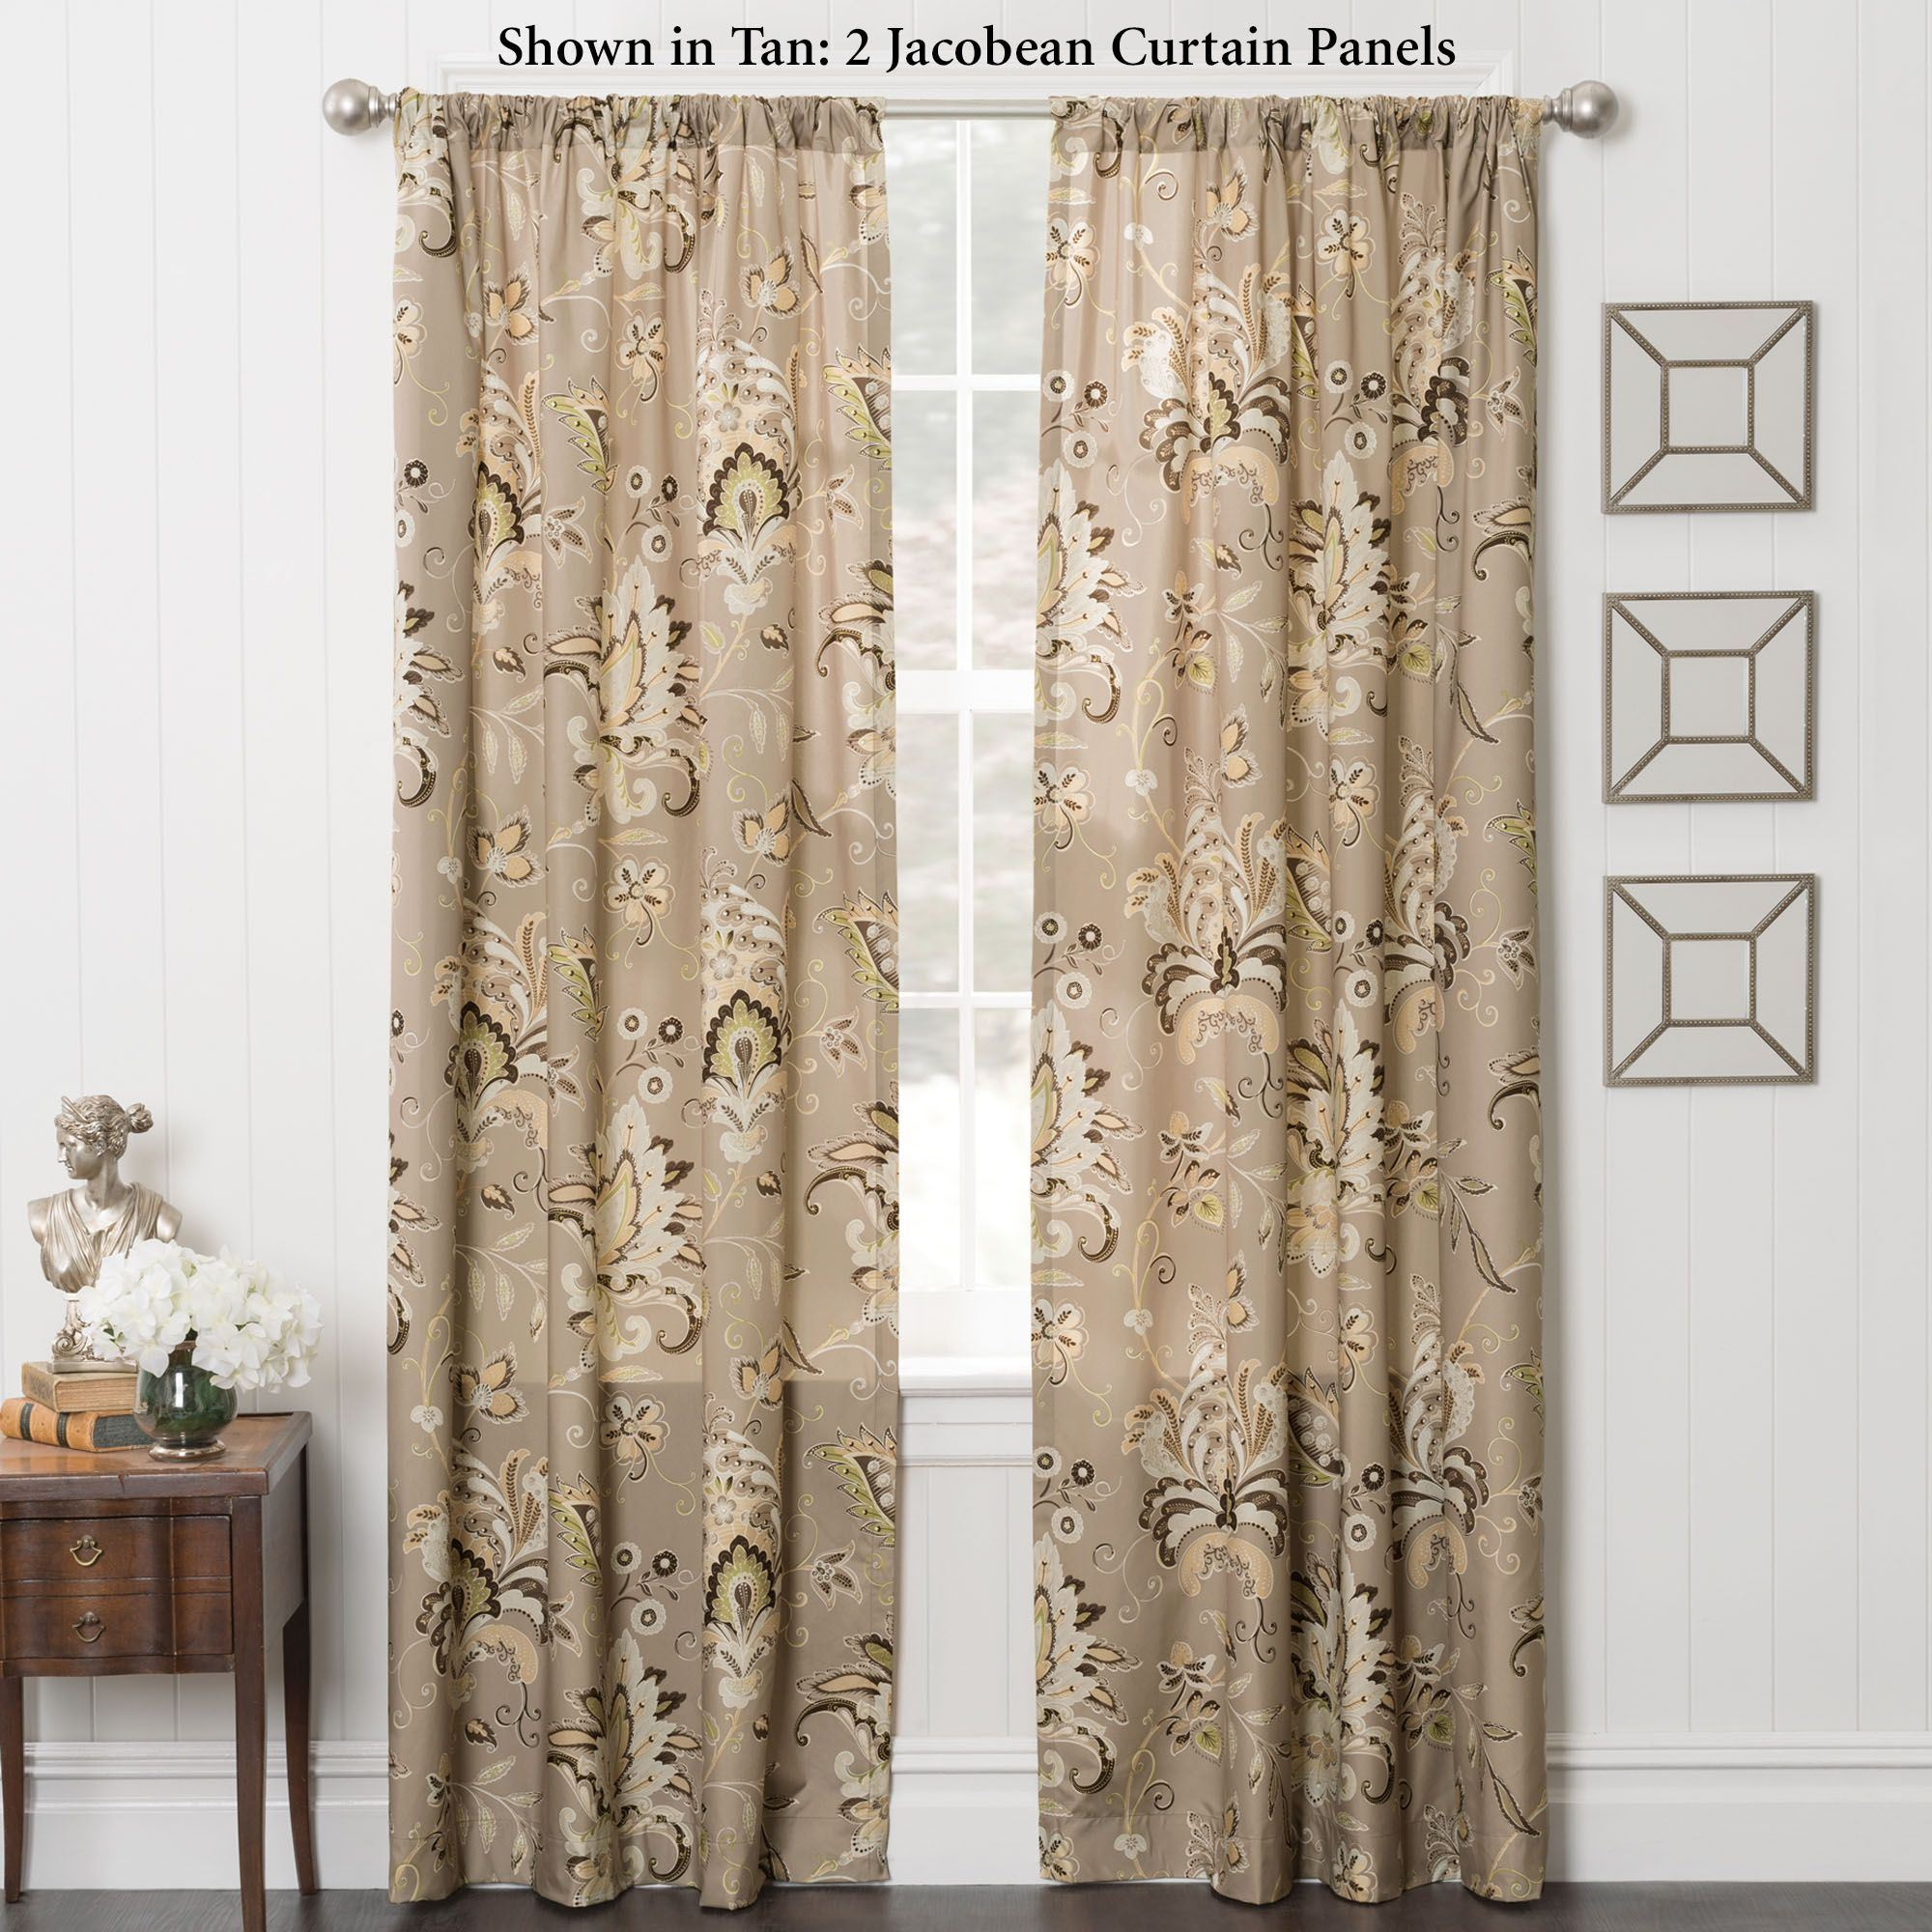 efficient of blackout walmart eclipse grommets available energy multiple photo grommet curtains and with images colors in microfiber sizes x curtain com panel panels